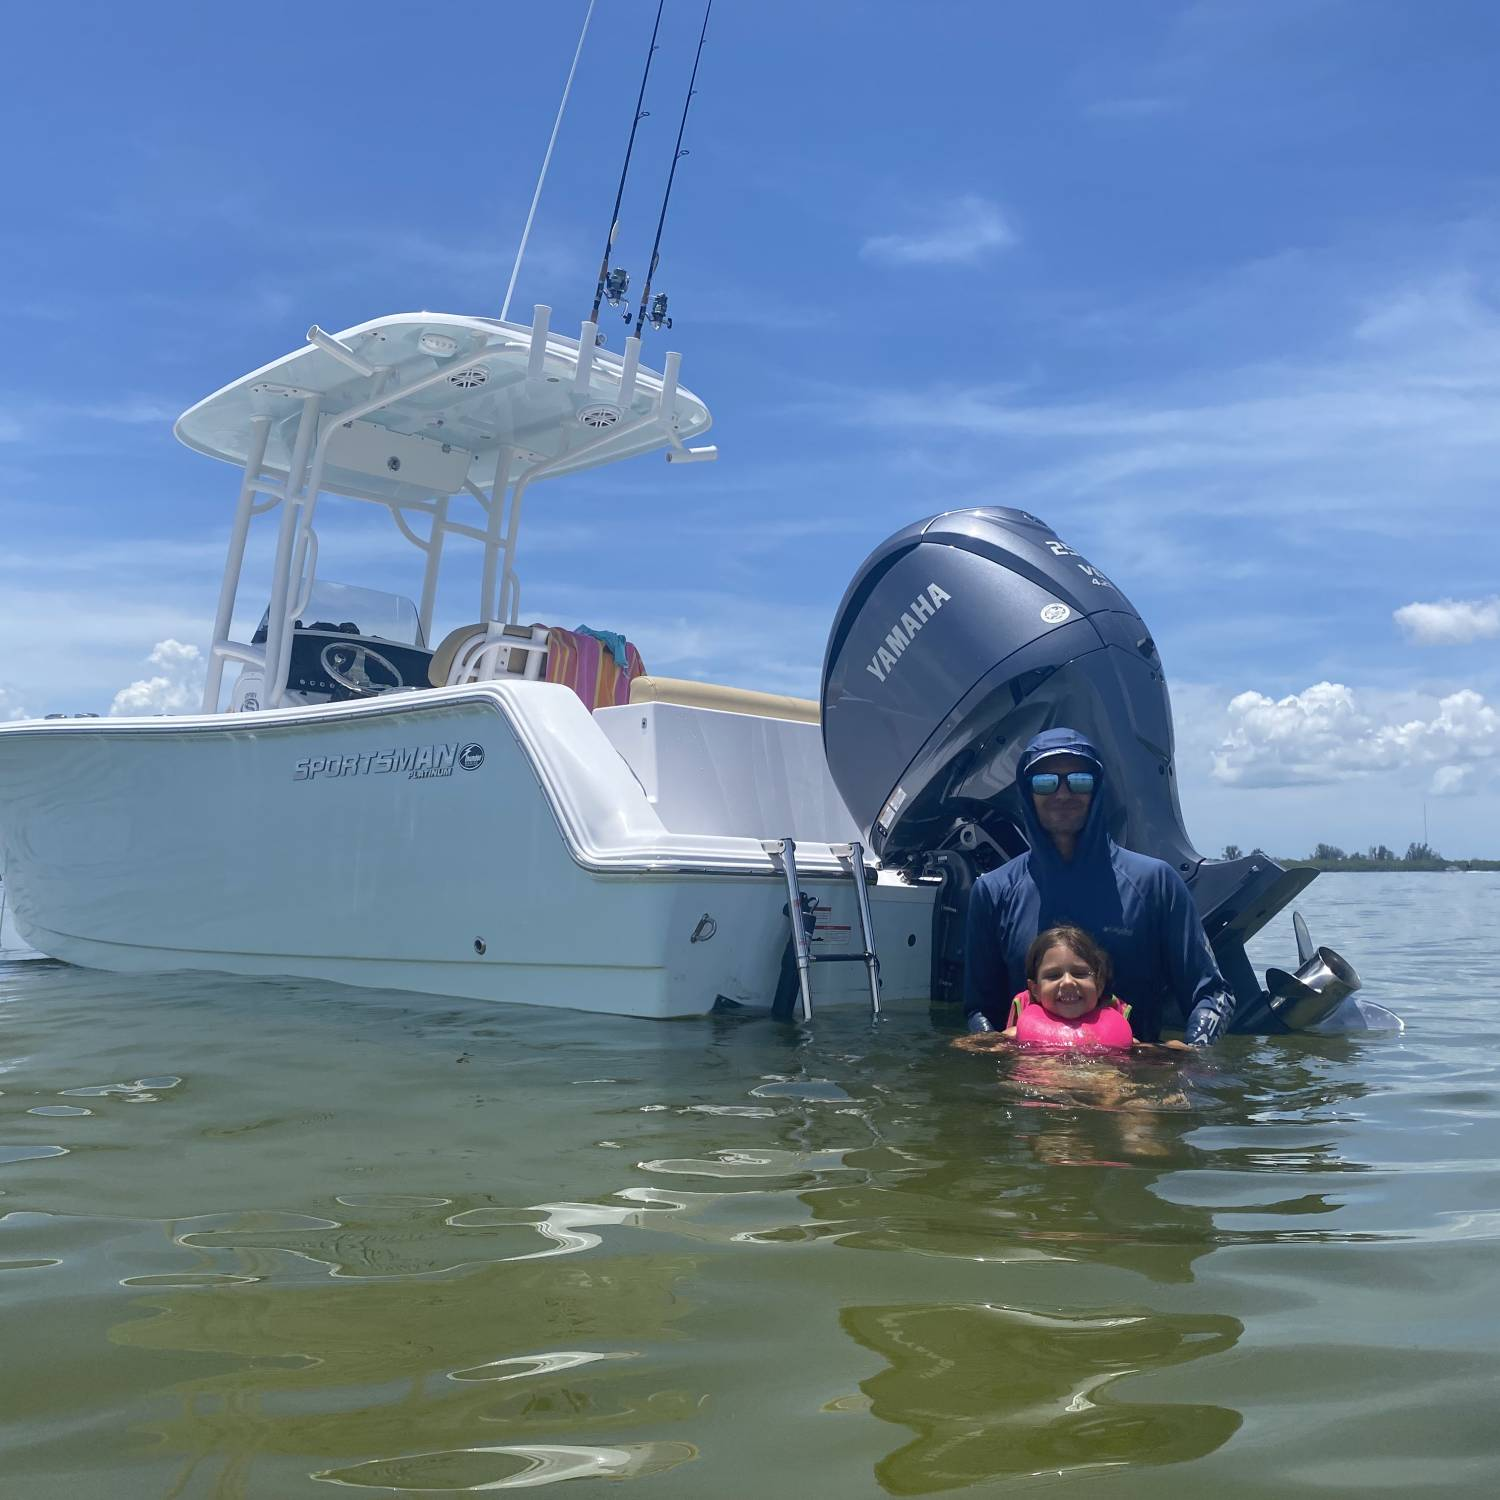 Fun day at the sandbar with our new 232 Open